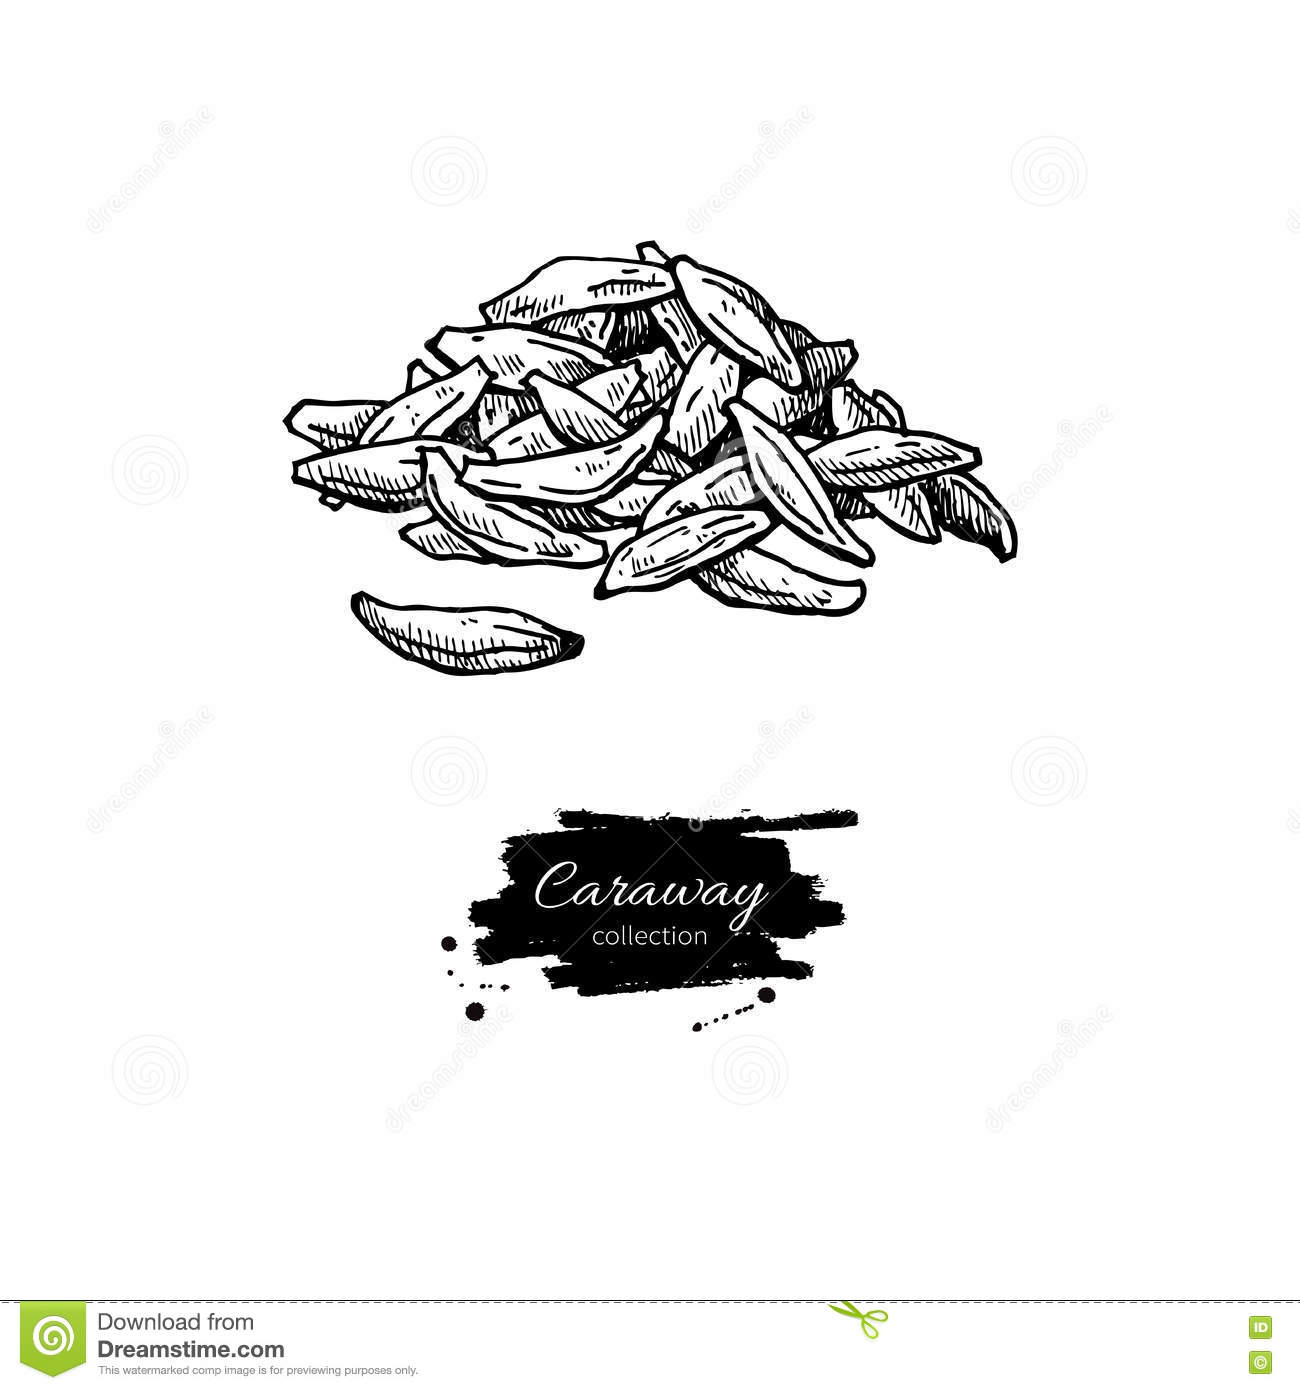 Caraway seed heap vector hand drawn illustration. Isolated spice